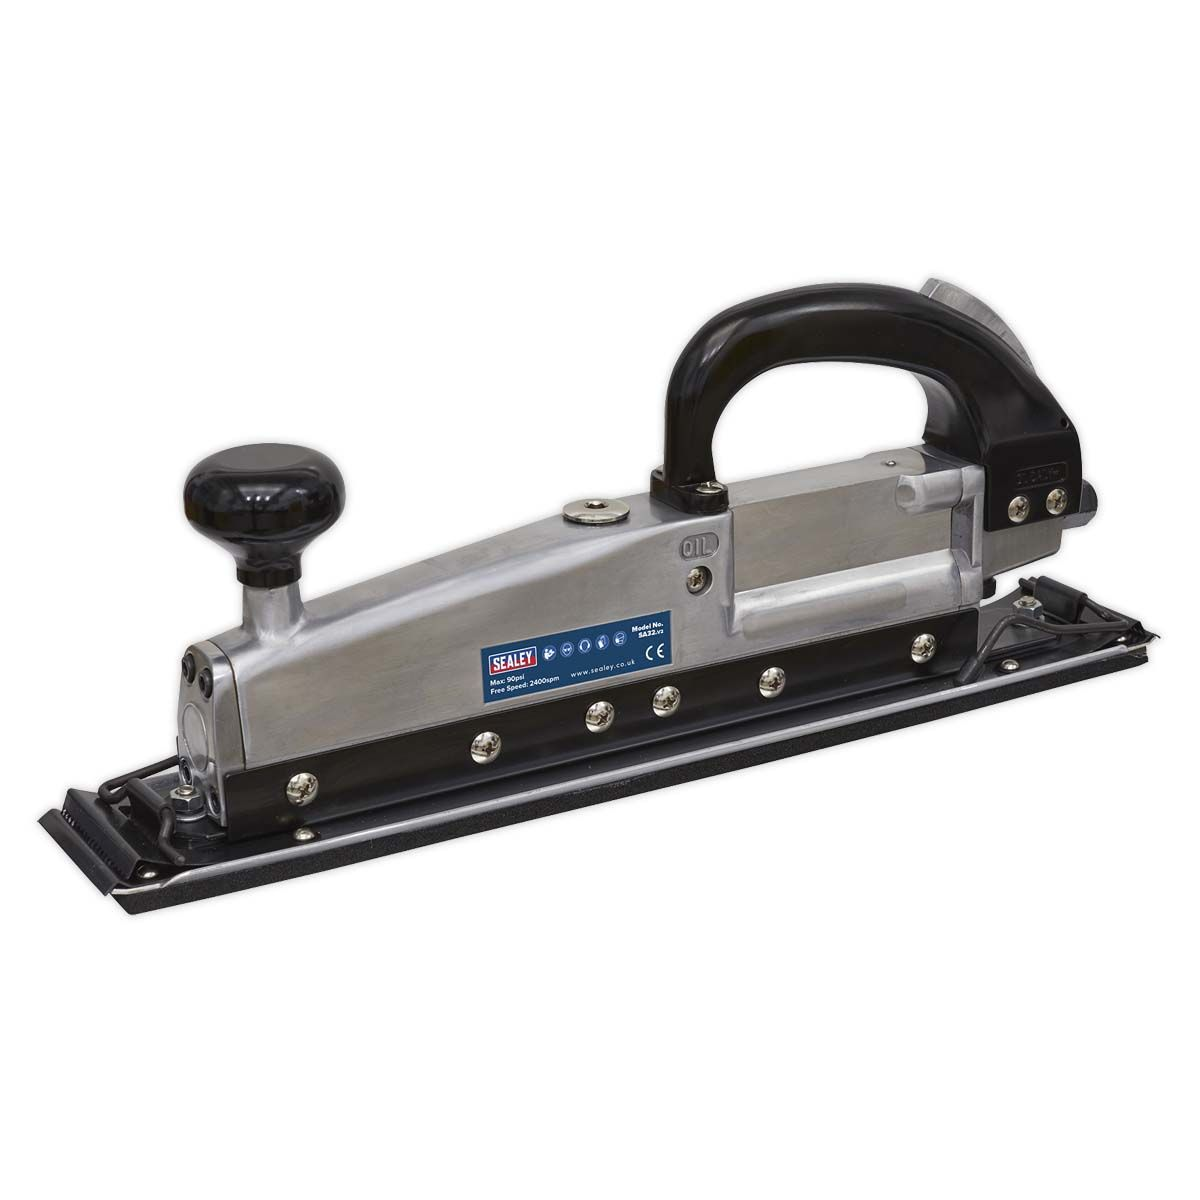 Sealey Air Long Bed Sander 400 x 70mm Twin Piston In-line